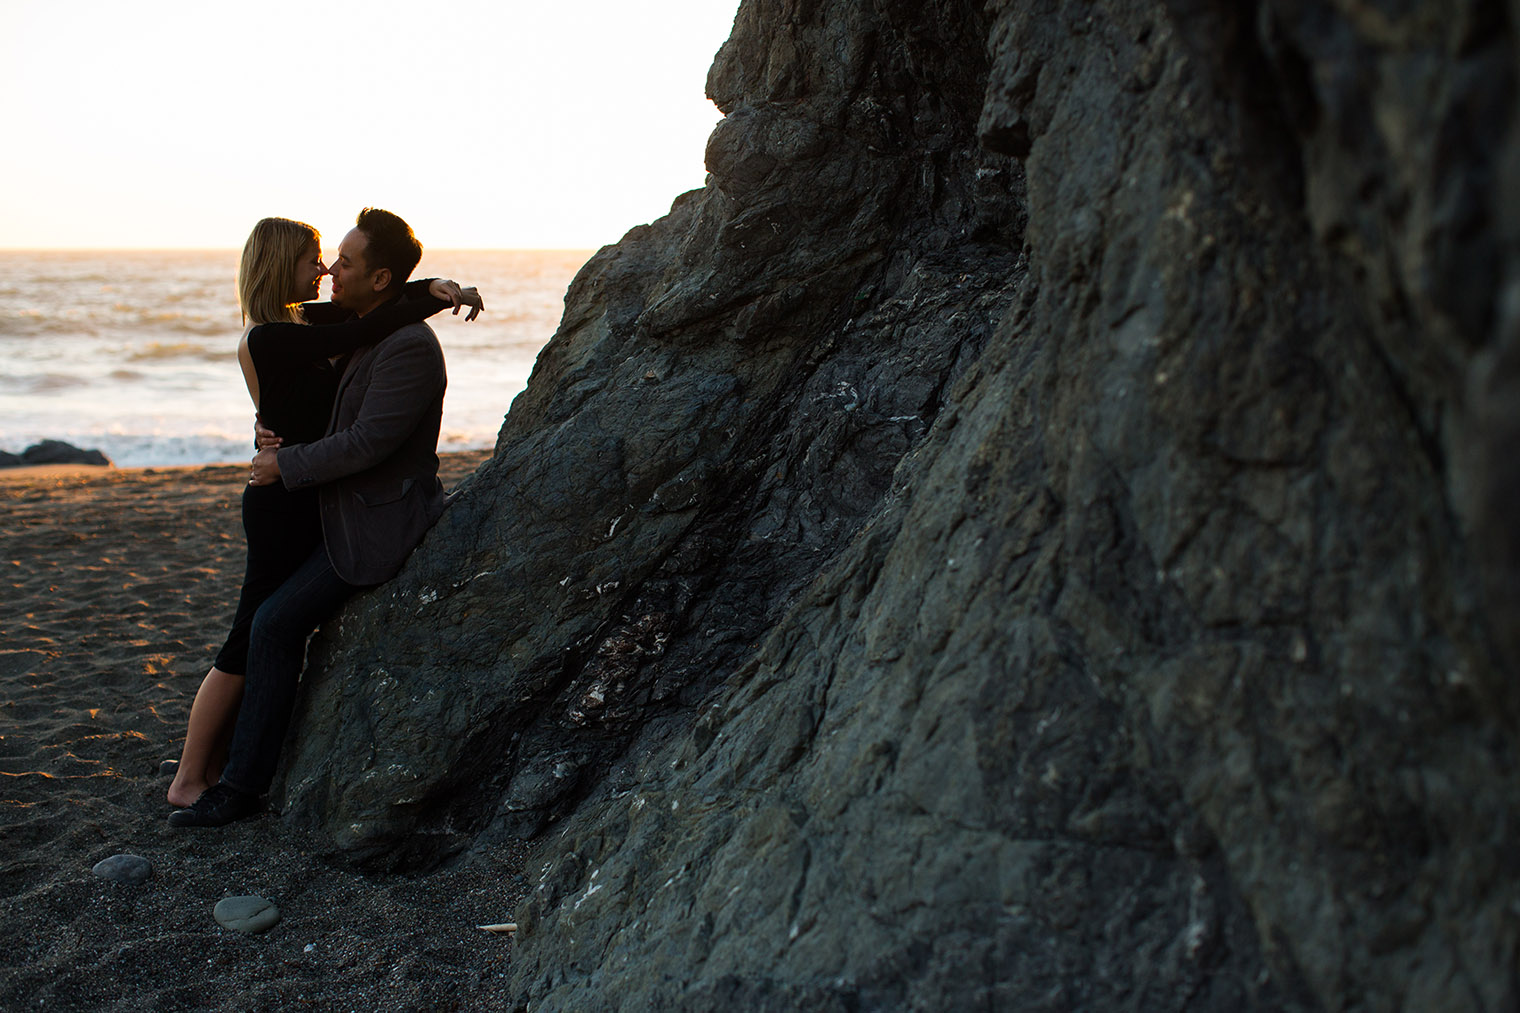 sonoma coast state park engagement session by Dustin Cantrell